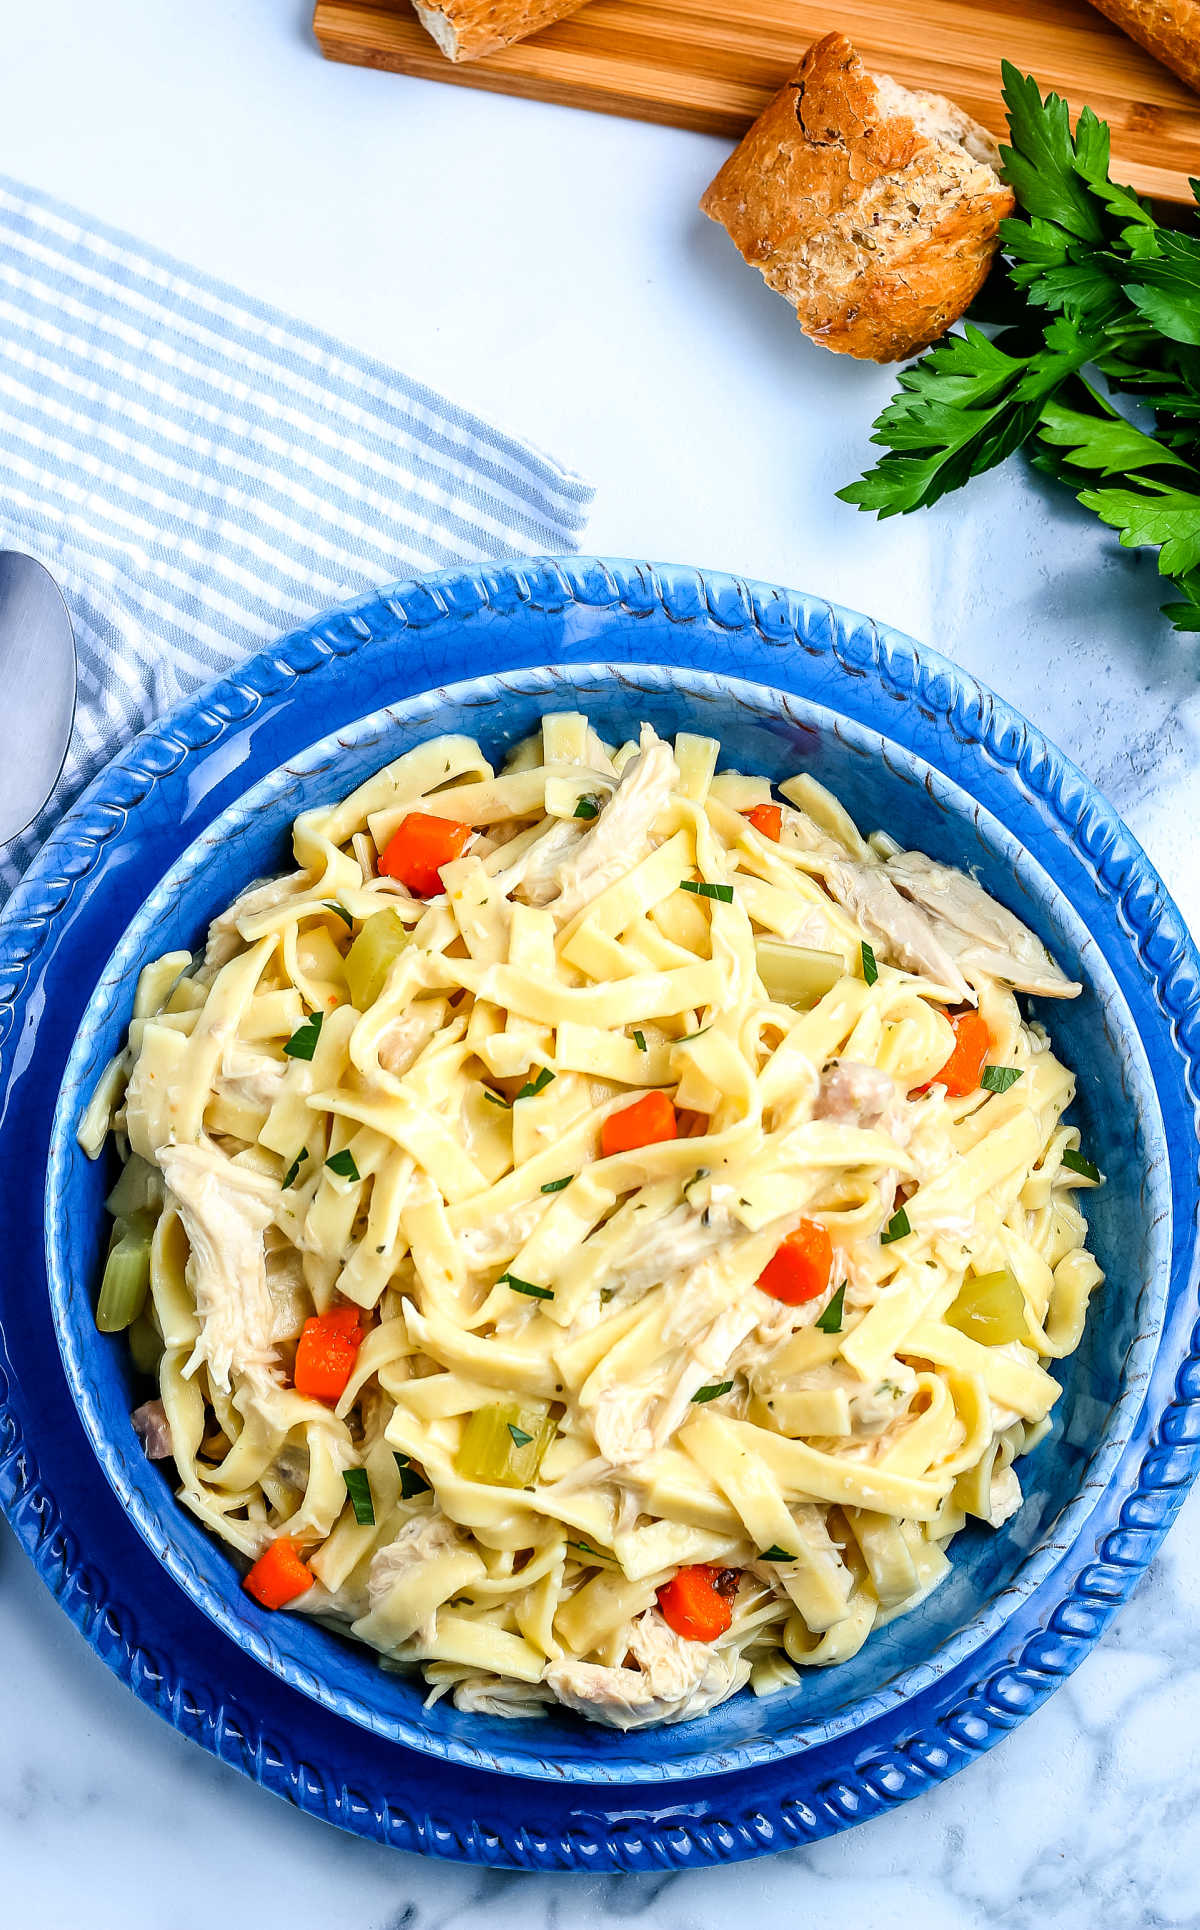 This Old Fashioned Chicken and Noodles recipe is a comfort food classic. It's chock-full of egg noodles, tender chicken, veggies, and a creamy sauce.  via @foodfolksandfun